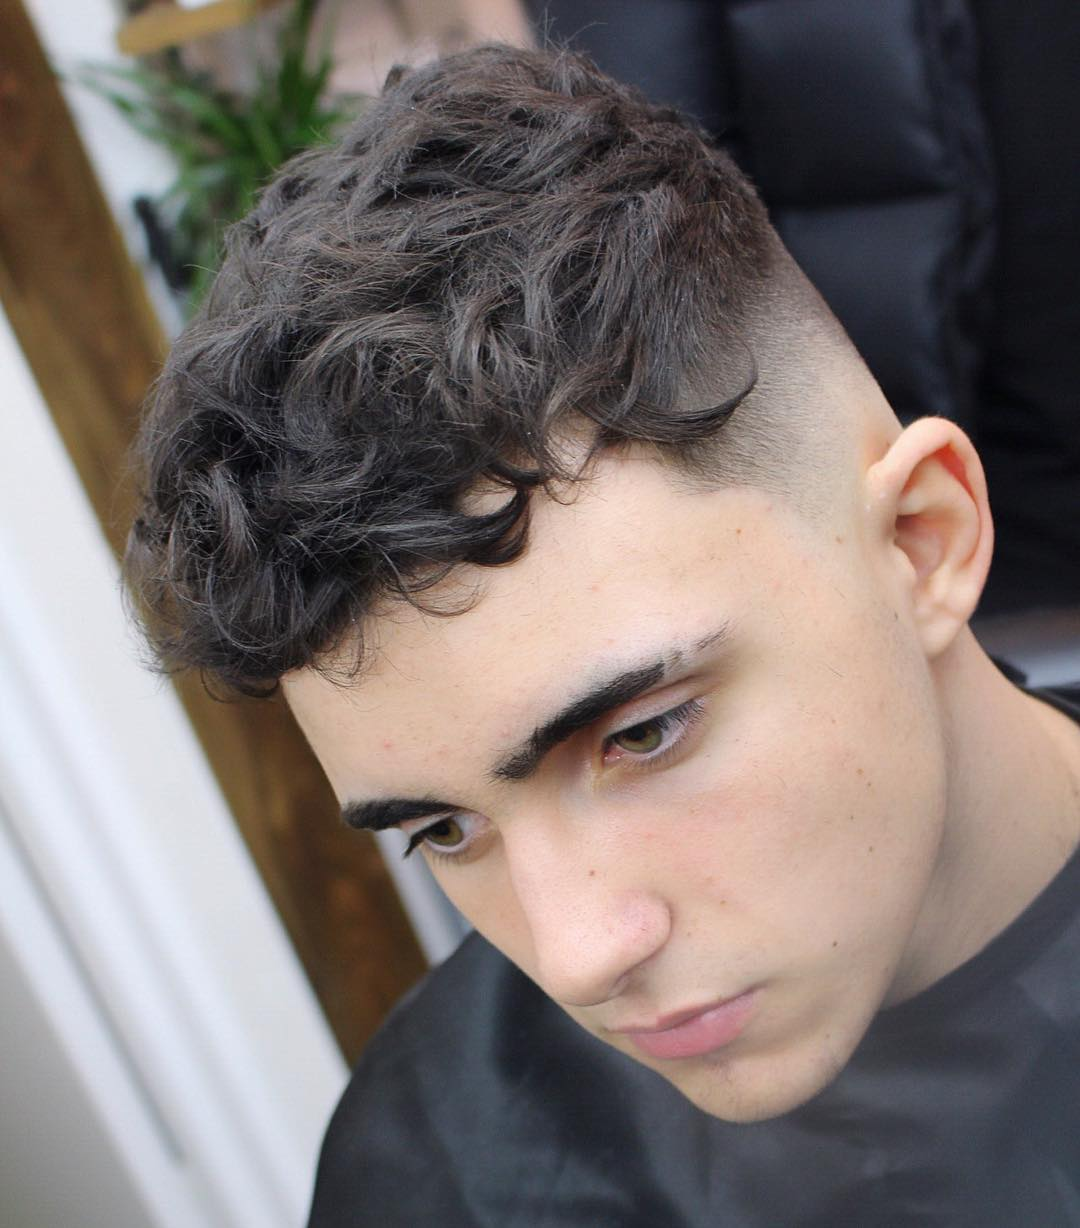 2017 05 side curls hairstyles - Combining Curls On Top With A Skin Fade Around The Back And Sides This Curly Hairstyle Is Perfect For Modern Men Who Want To Look Clean And Professional